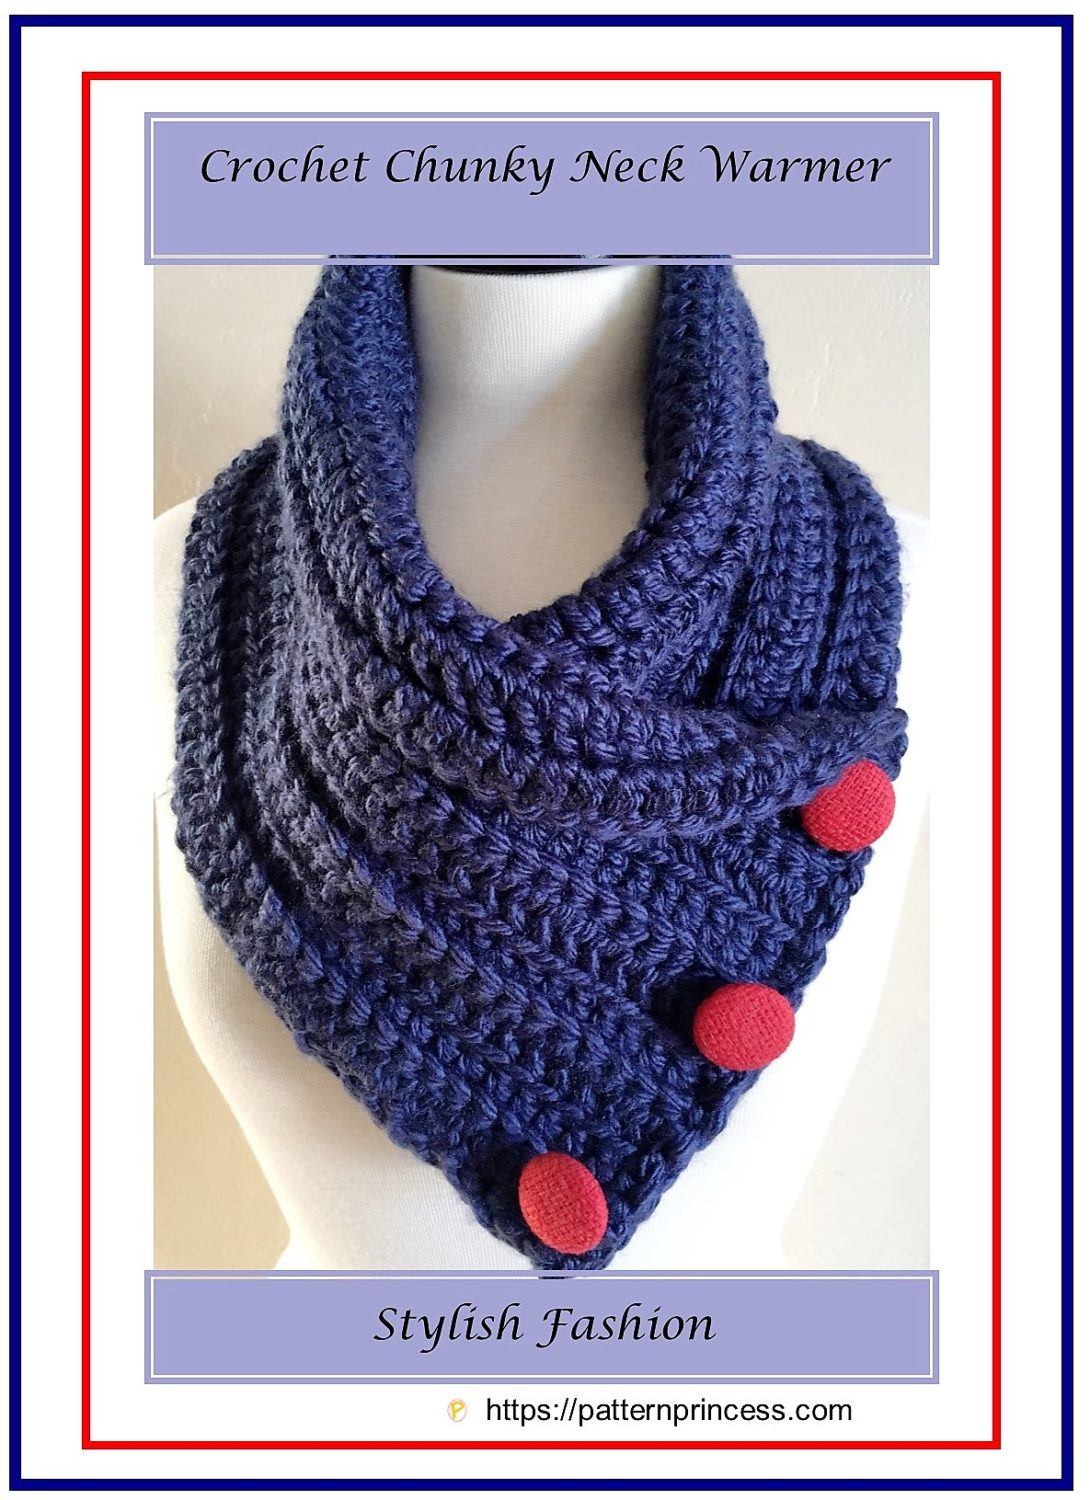 Crochet Chunky Neck Warmer 1